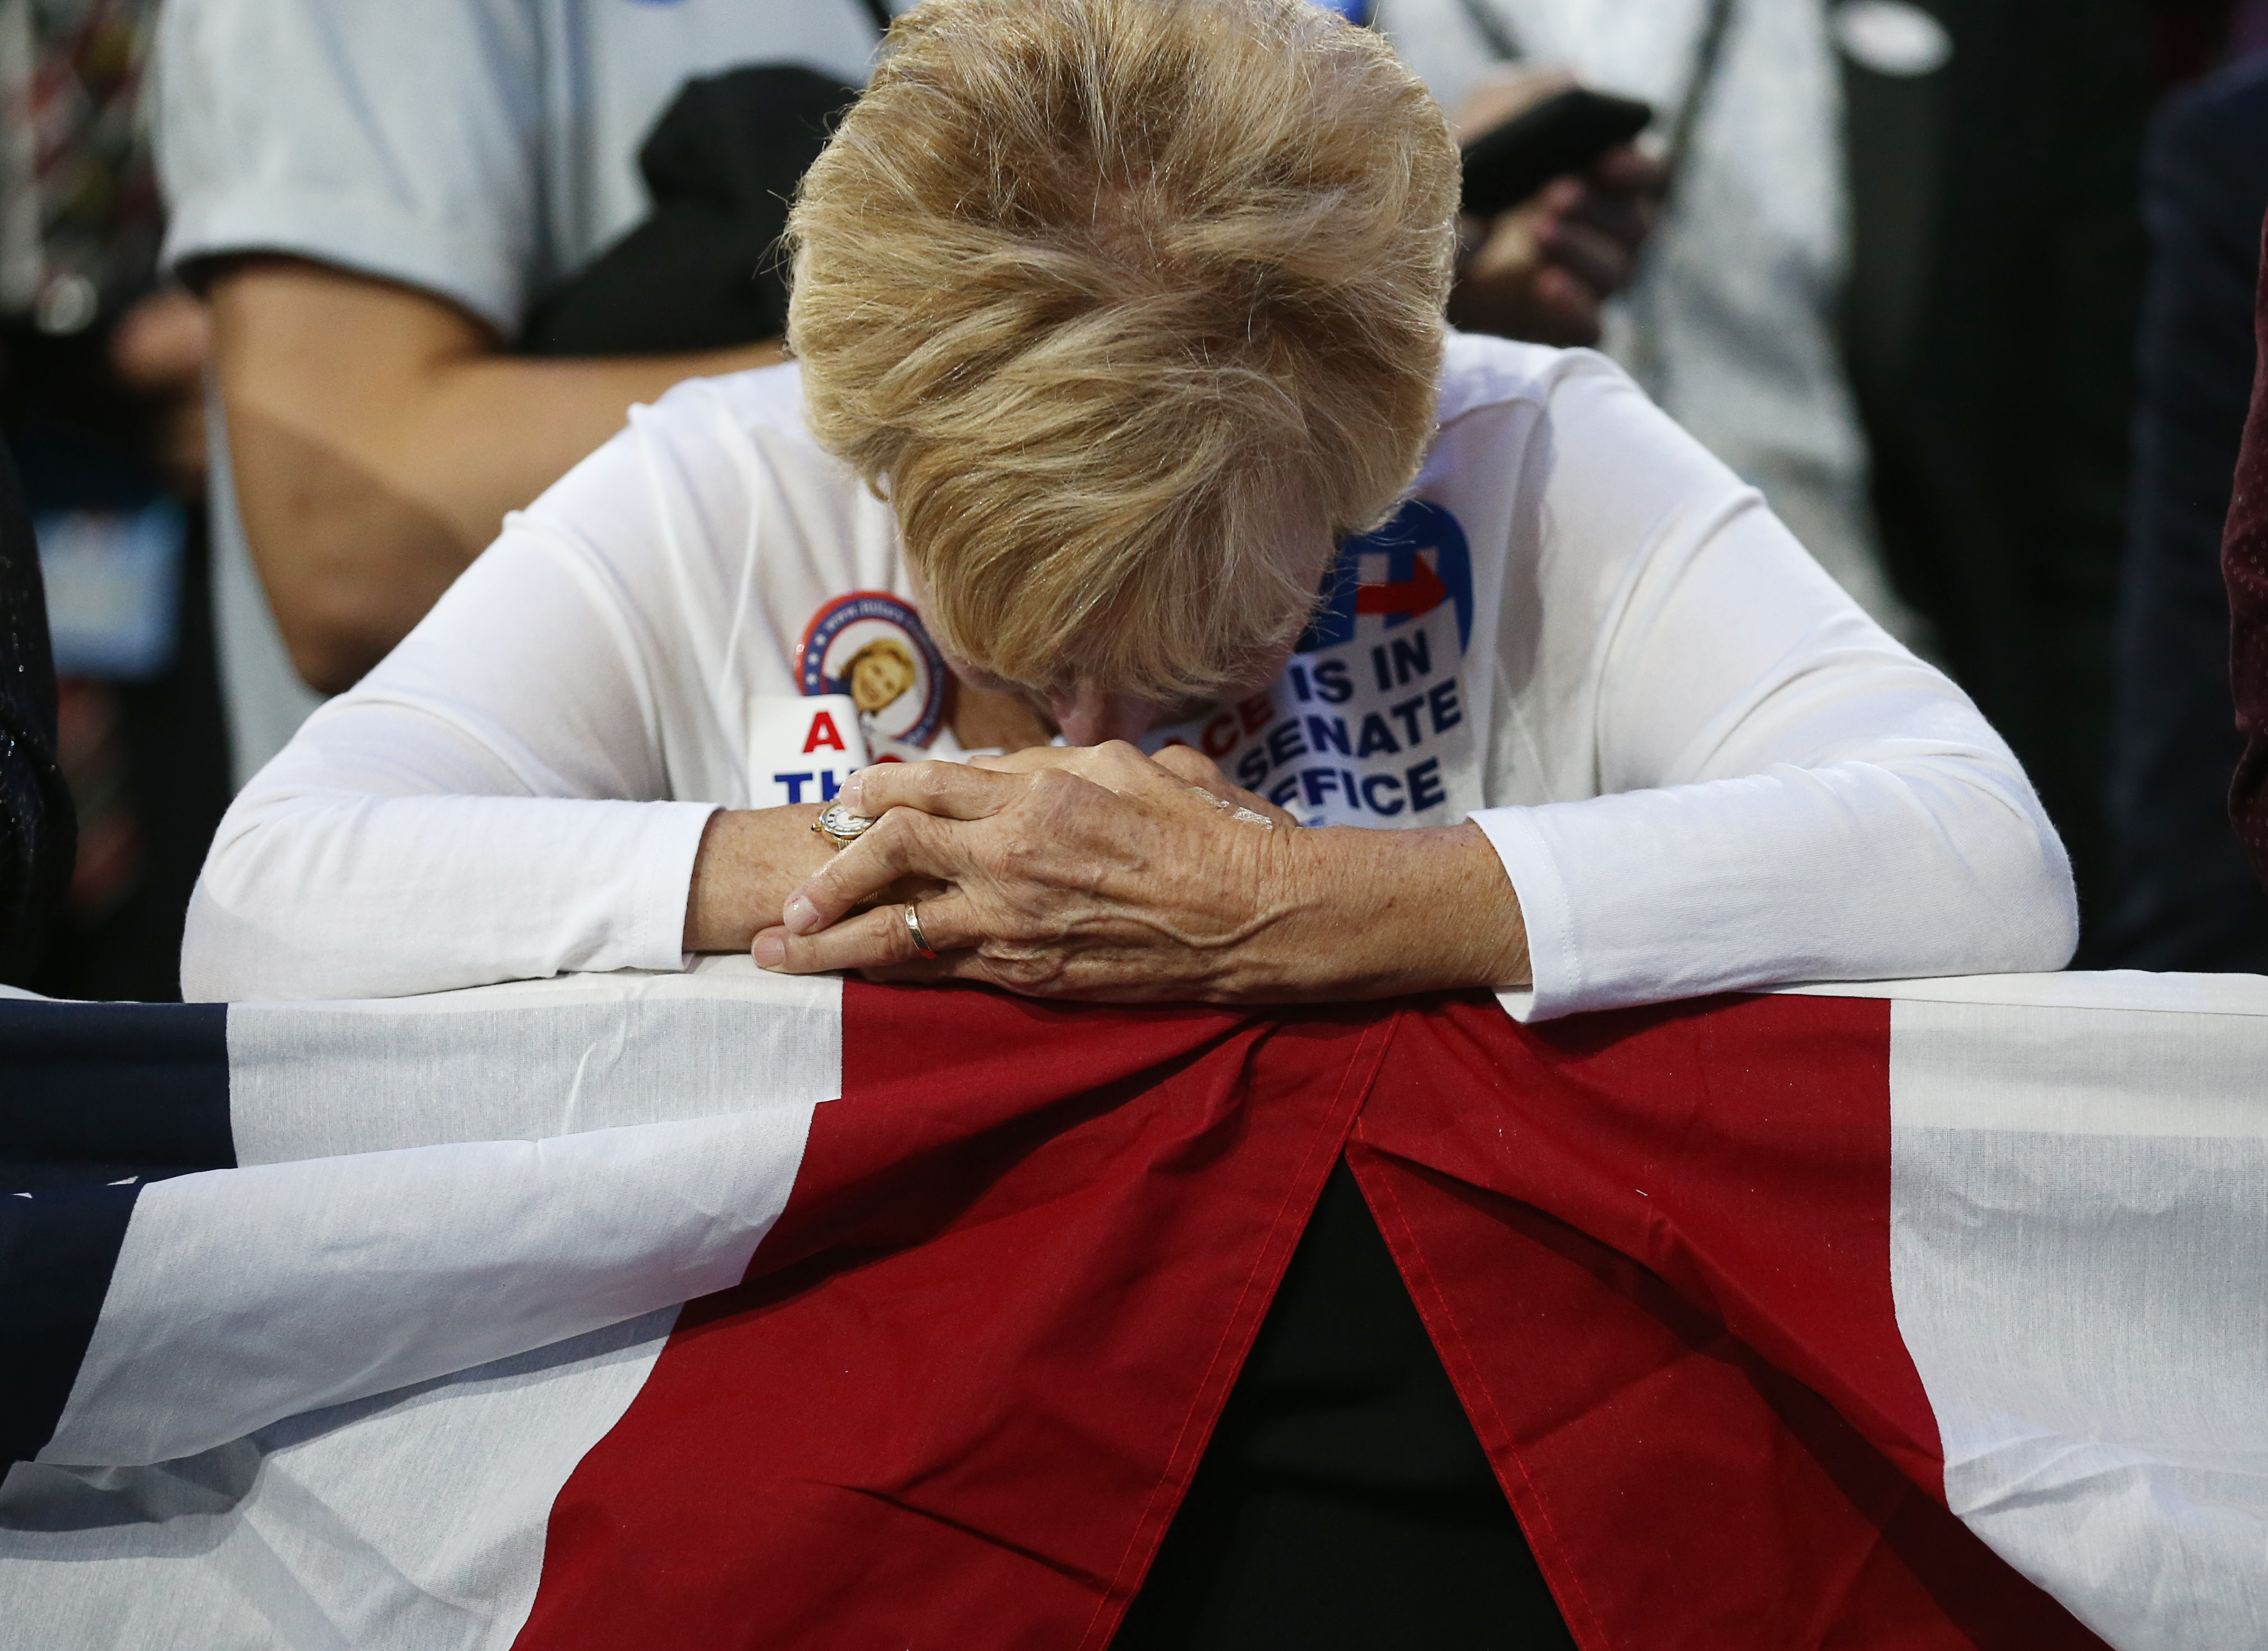 Supporter of Democratic presidential nominee Hillary Clinton watbows head at her rally in New York